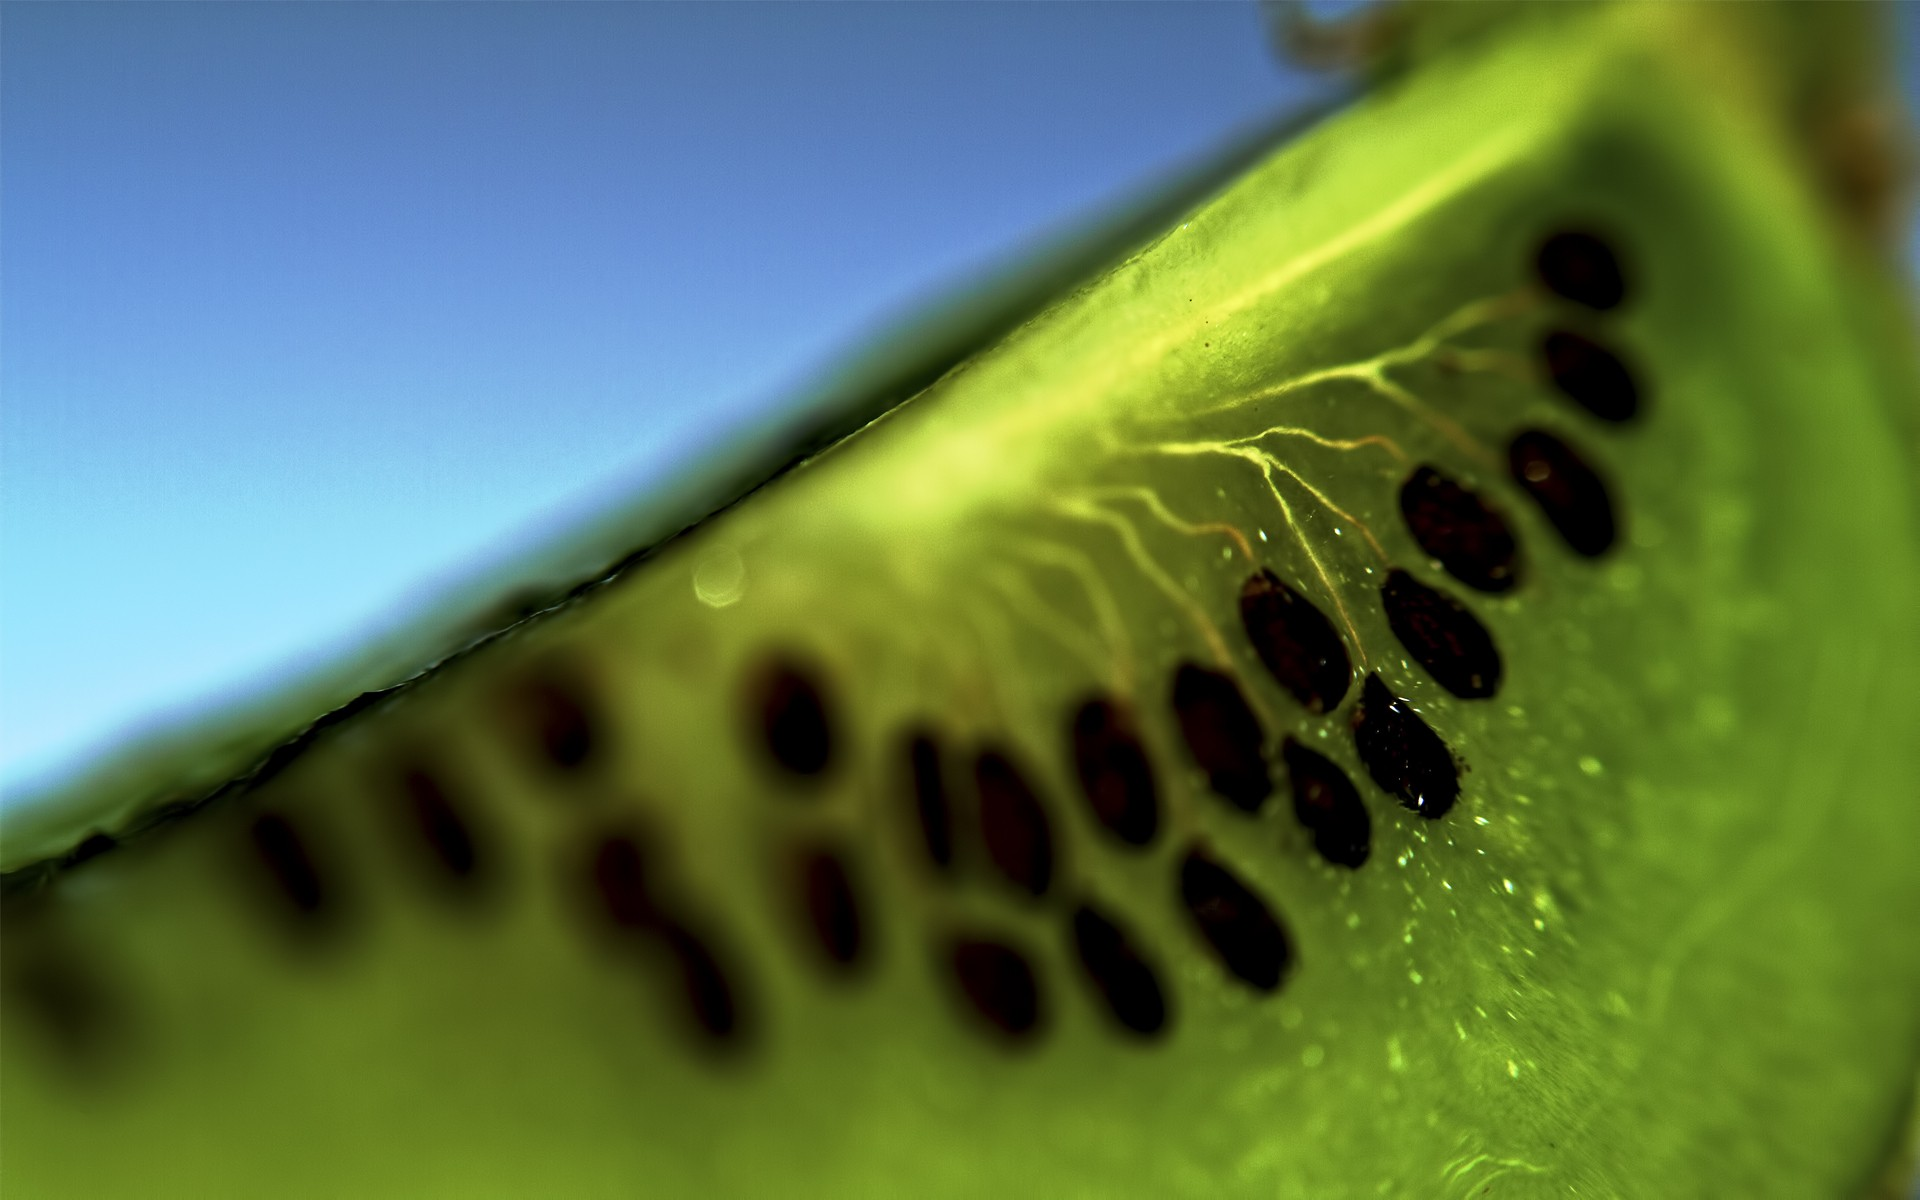 kiwi fruit slice wallpaper background